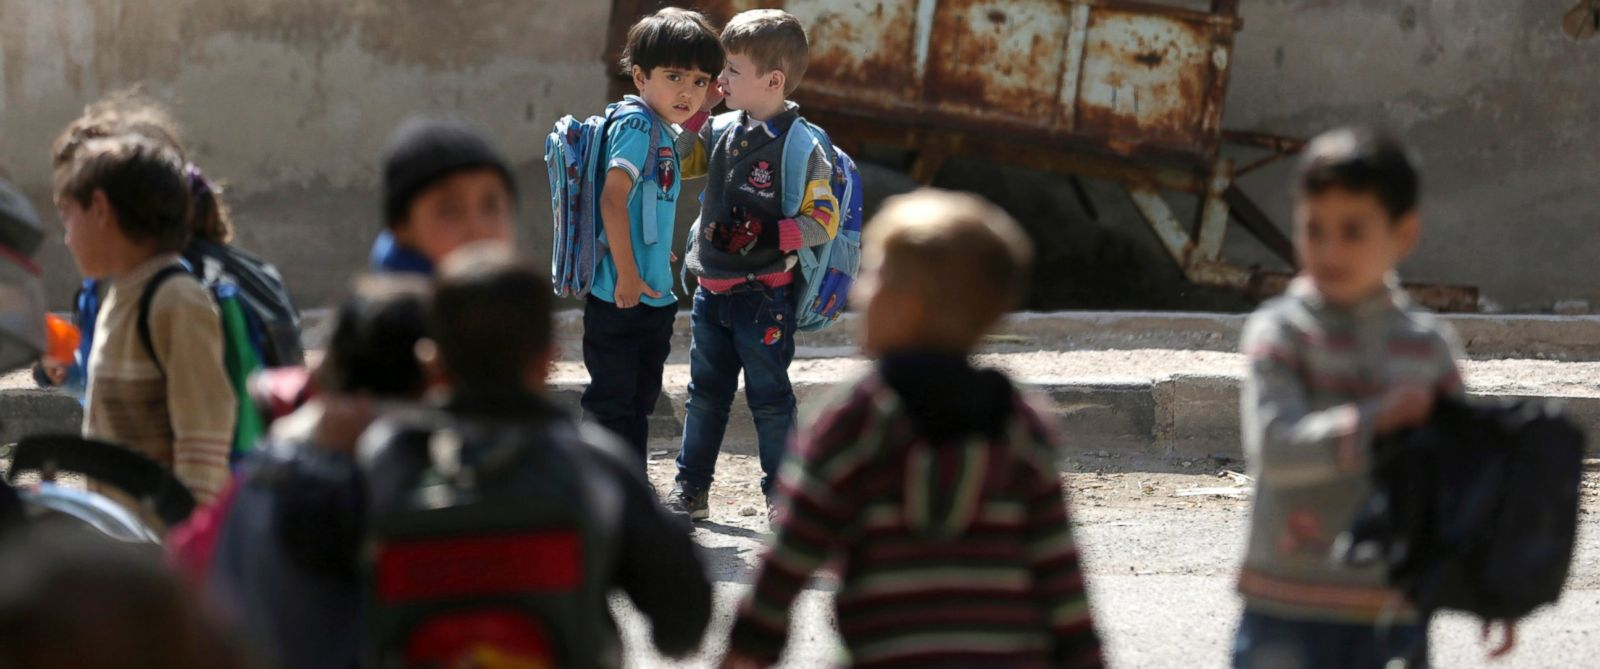 PHOTO: Children carrying school bags stand near the Nabaa Al-Hayat center for education and psychosocial support for children in places undergoing a crisis, in eastern al-Ghouta, near Damascus, Oct. 21, 2014.